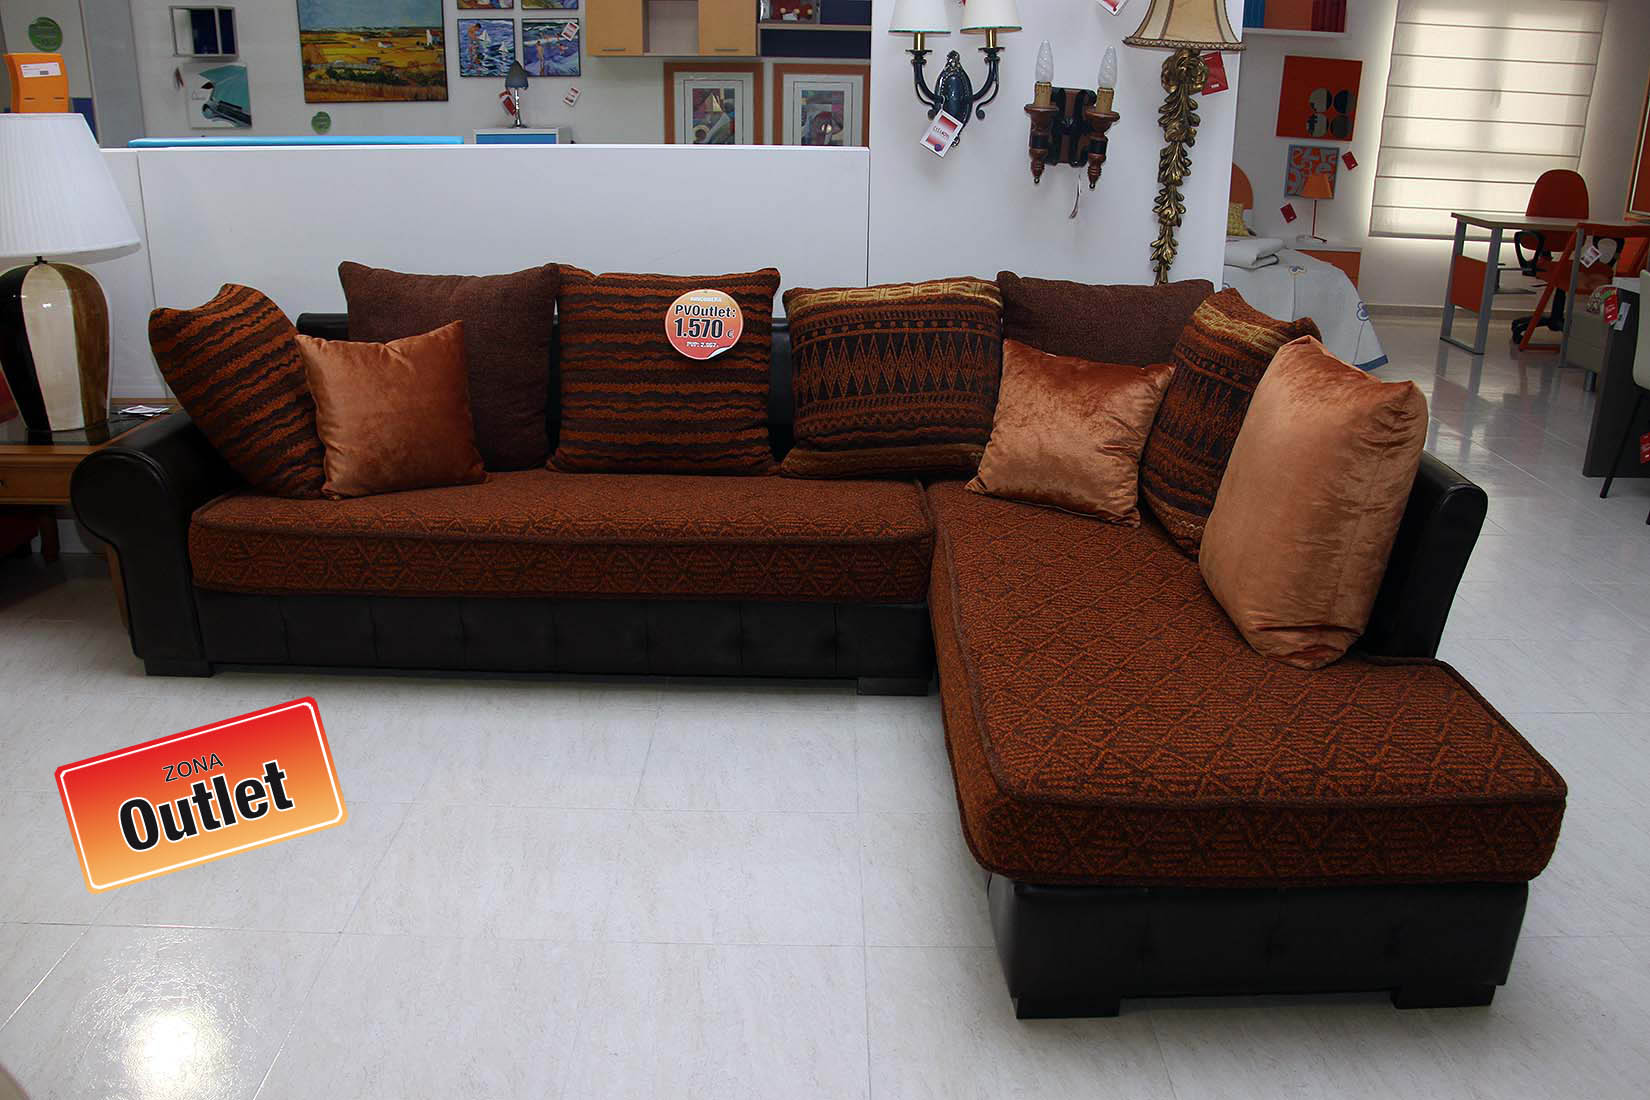 muebles y decoracion online outlet awesome descuentos ForMuebles Y Decoracion Online Outlet